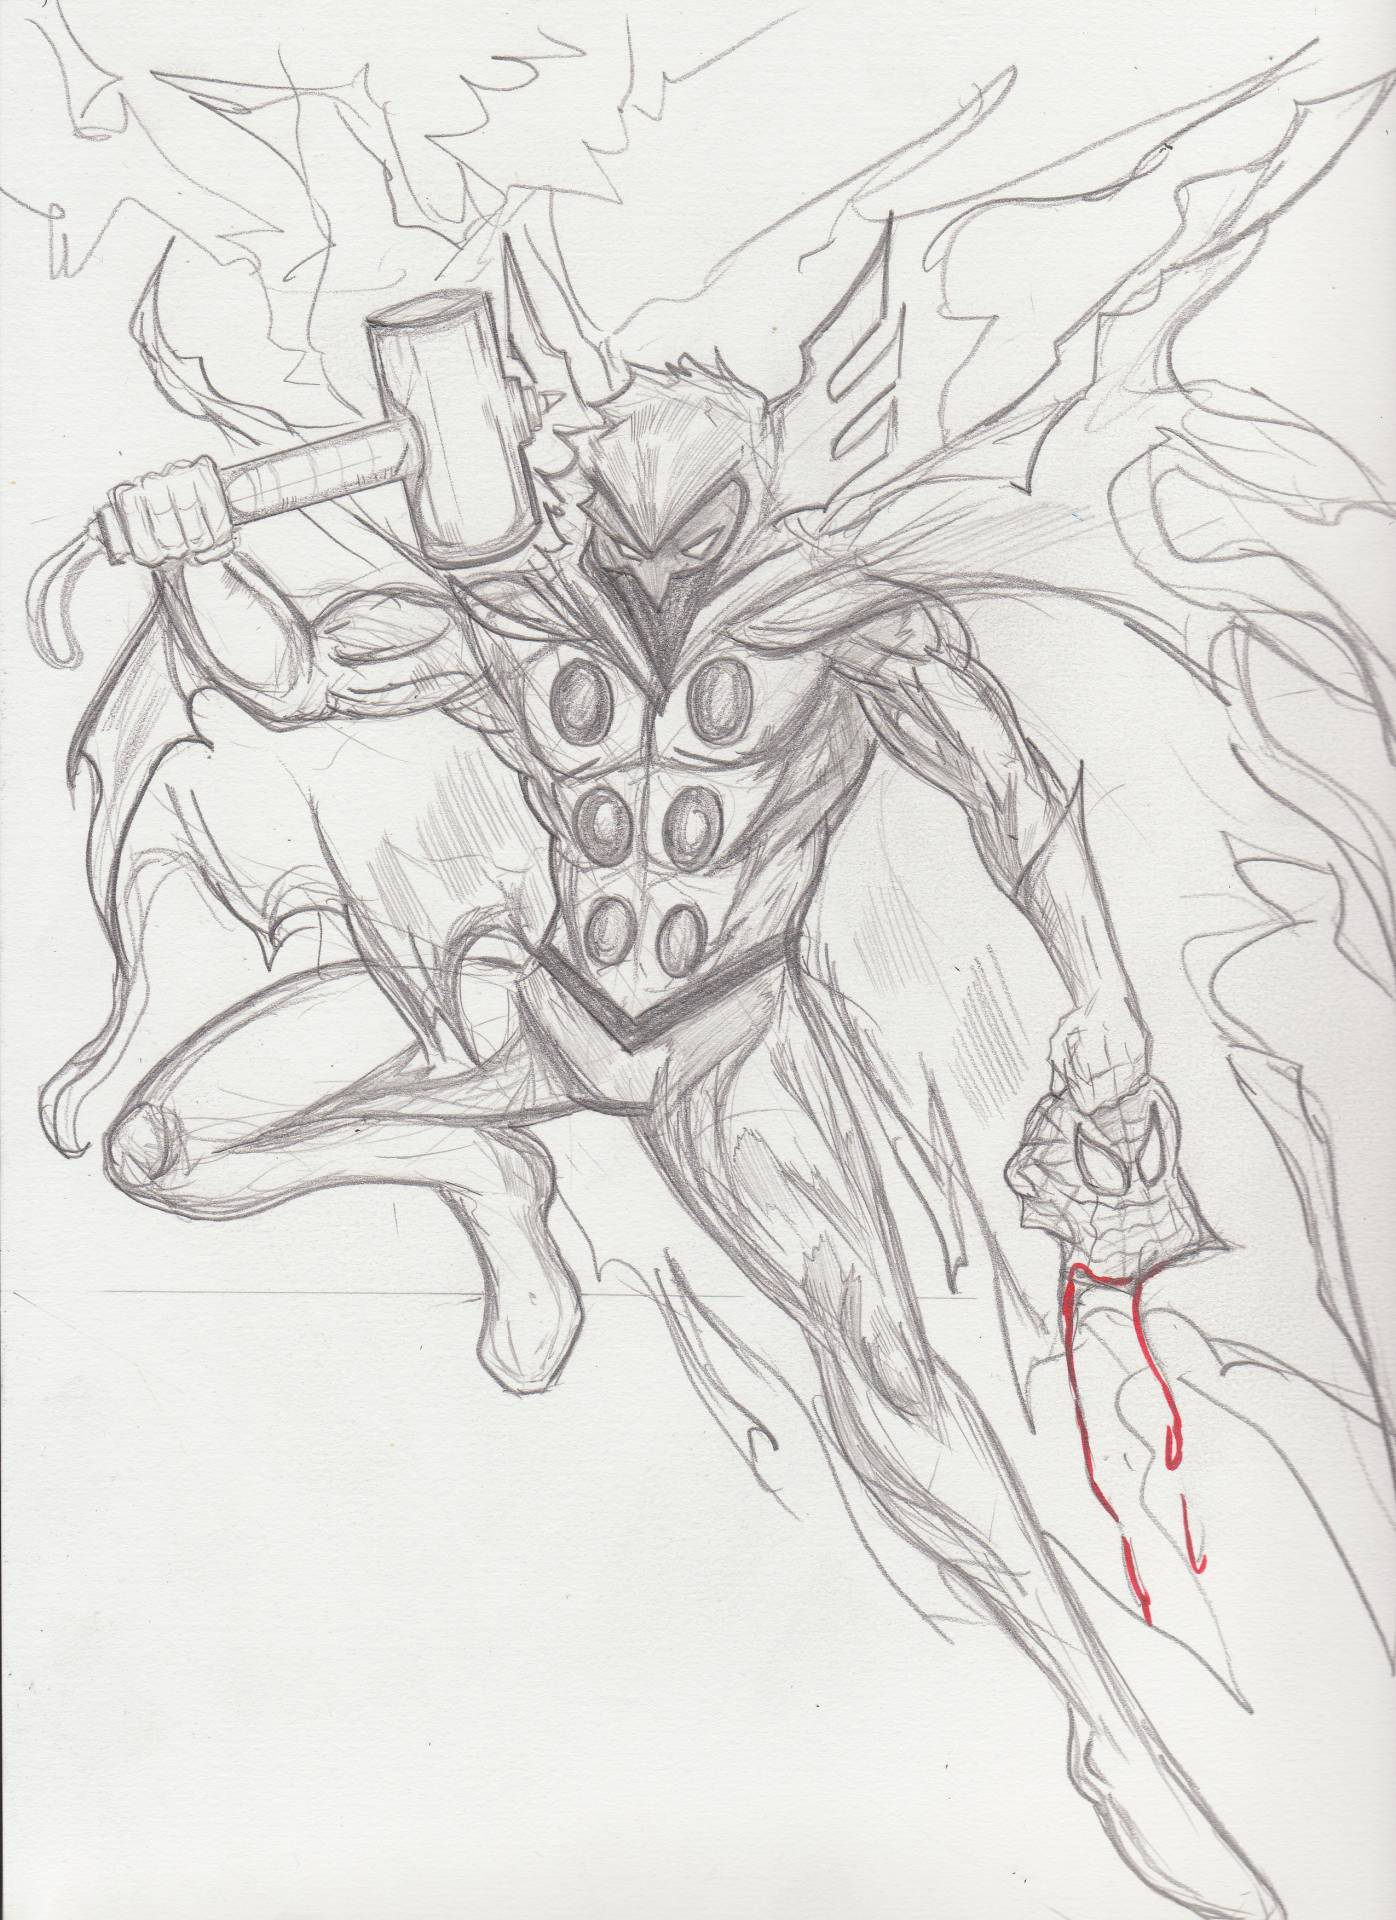 Hobgoblin--is he worthy? Well, that's questionable but I think we could all agree, ol' Spidey wouldn't stand a chance if this happened. Poor webhead. *crickets*